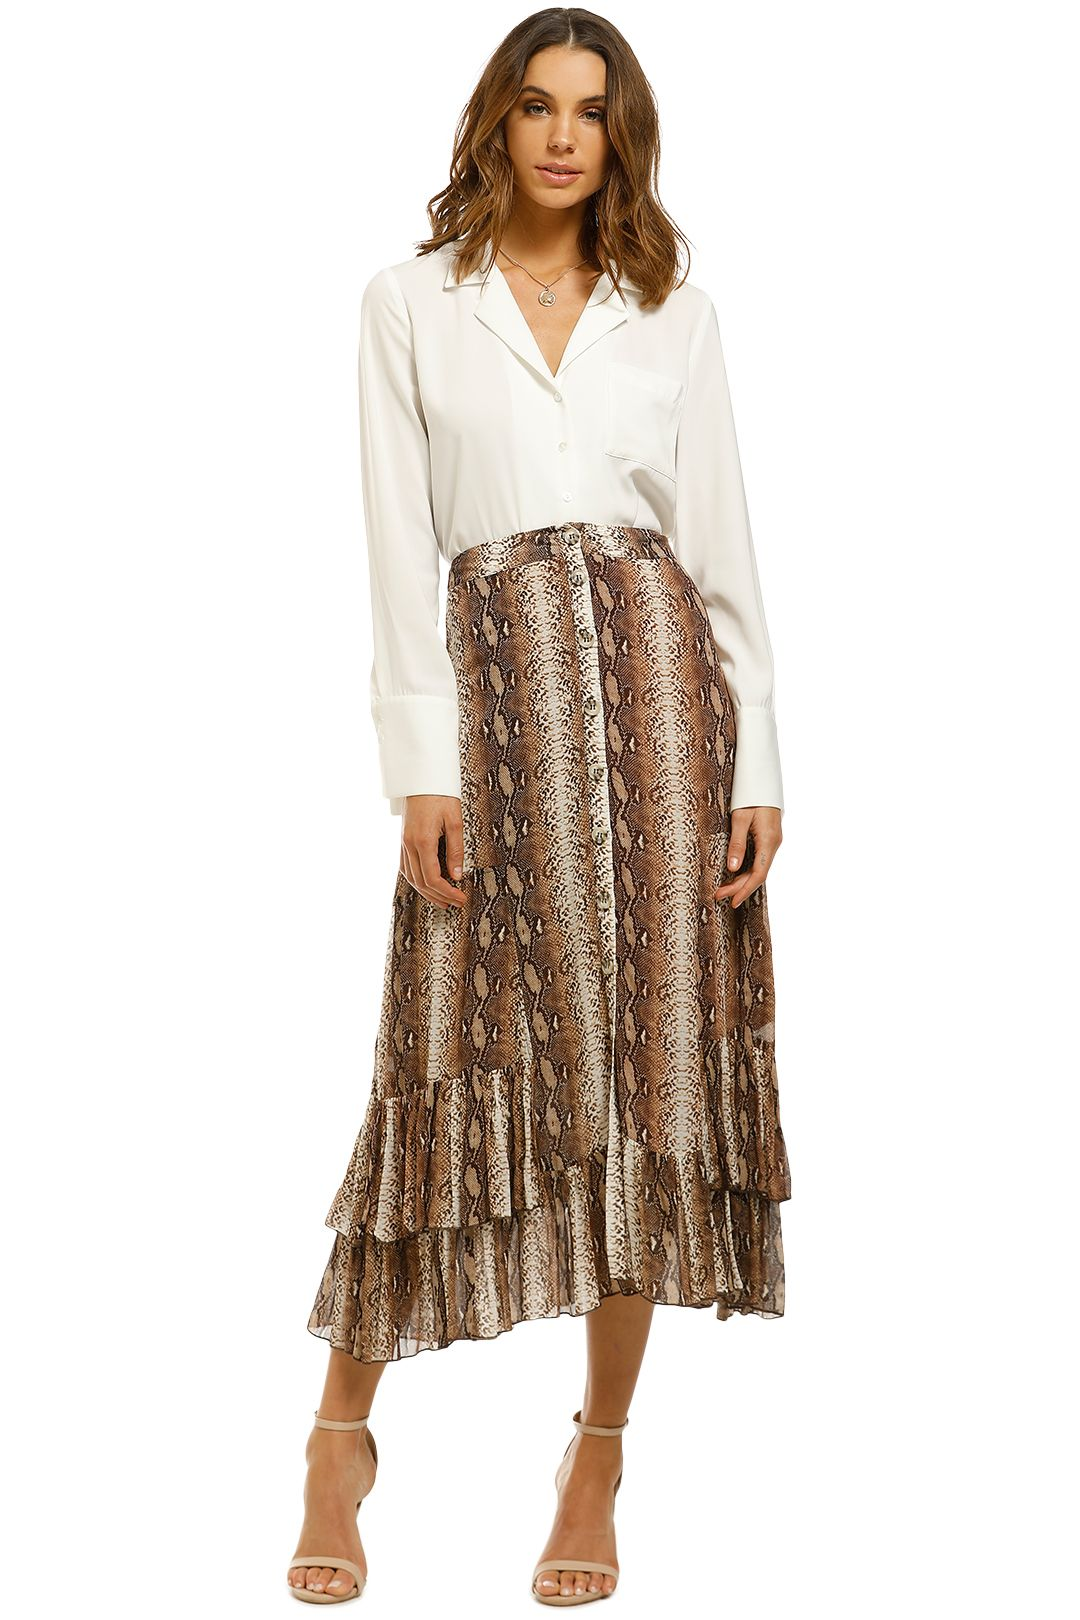 Cooper-by-Trelise-Cooper-Frill-Me-On-Skirt-Front